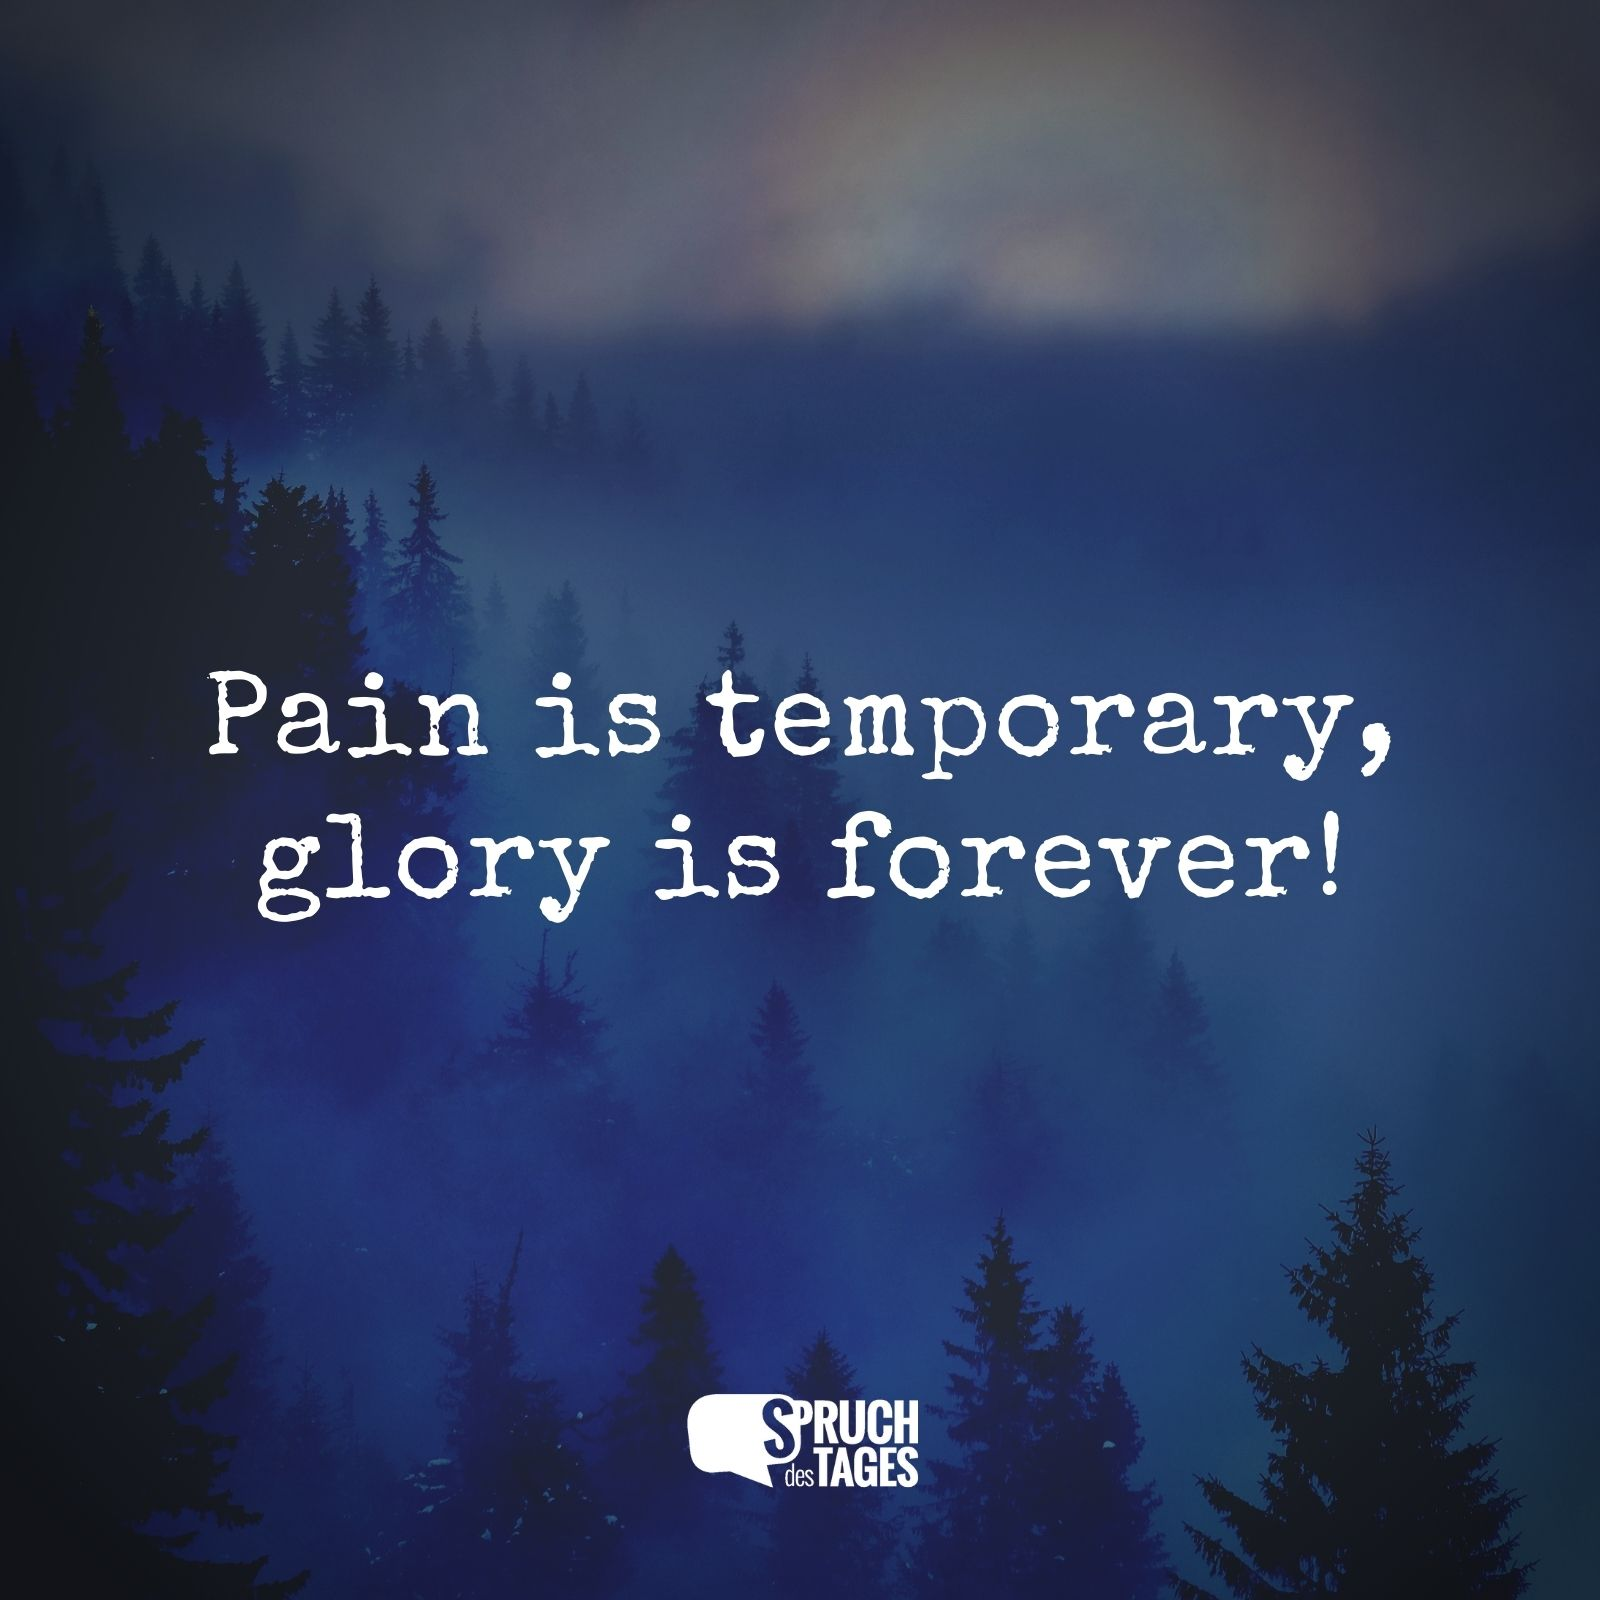 Pain is temporary, glory is forever!